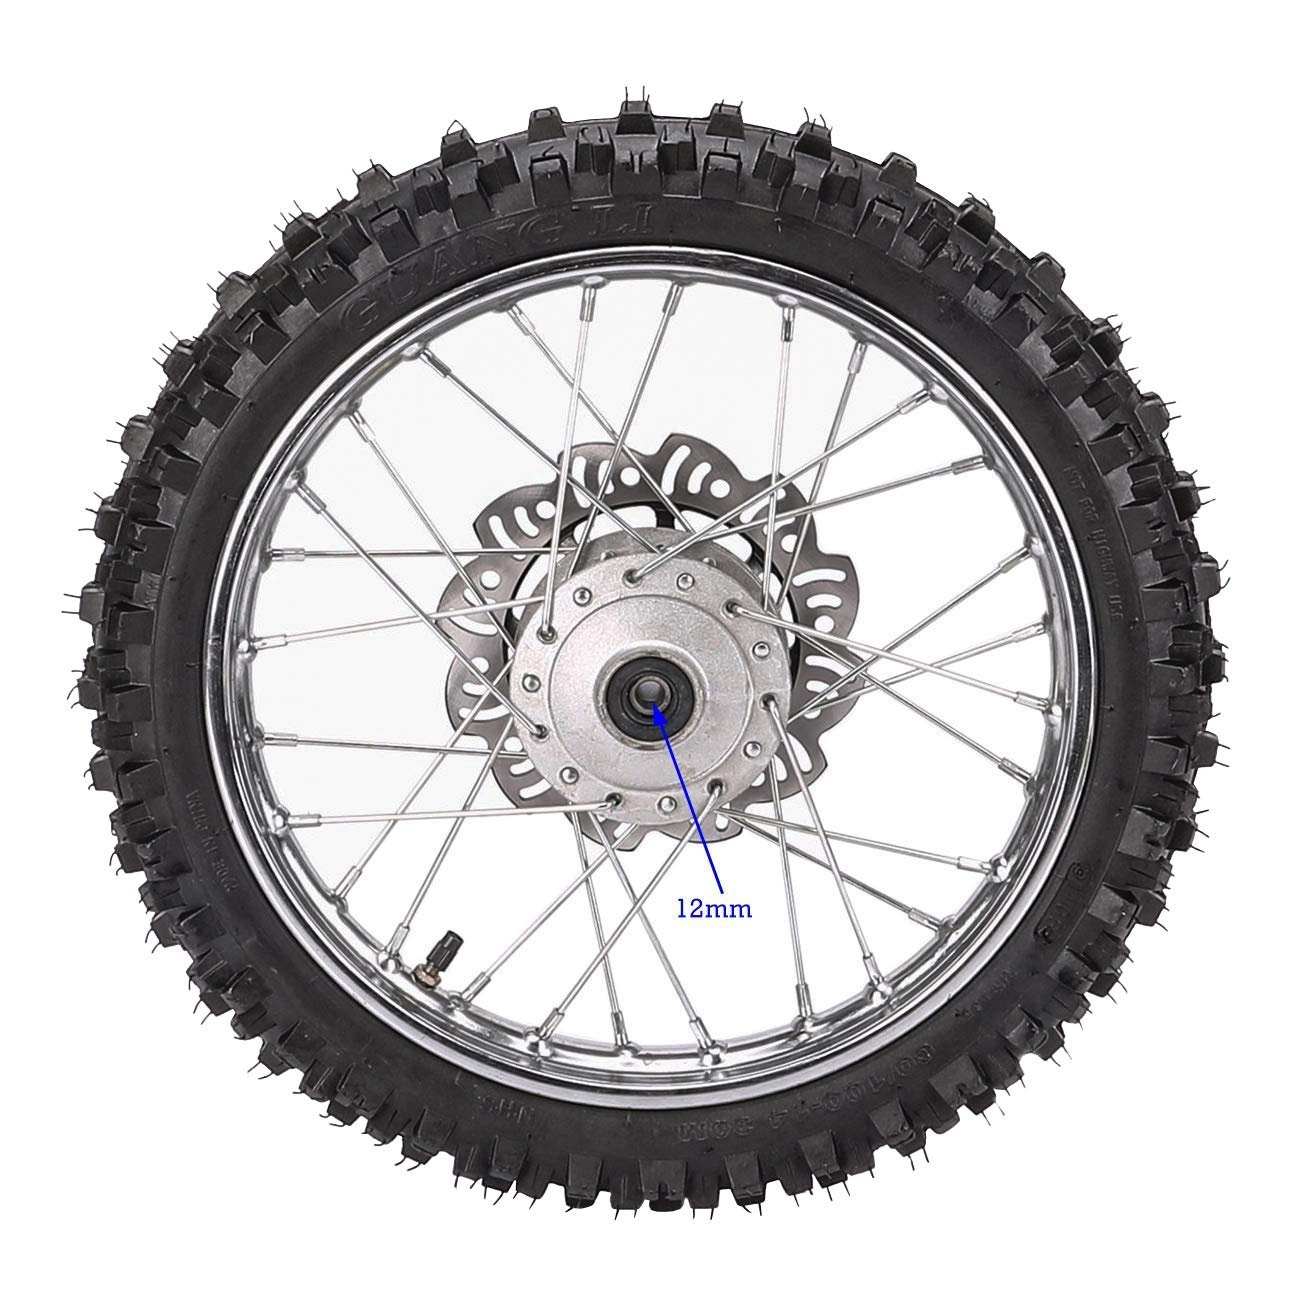 ZXTDR 2.50-14 1.4x14 inch Wheel With 12mm Bearing Axle 60//100-14 Tire Rim /& Disc Roto Assembly For Dirt Pit Bike